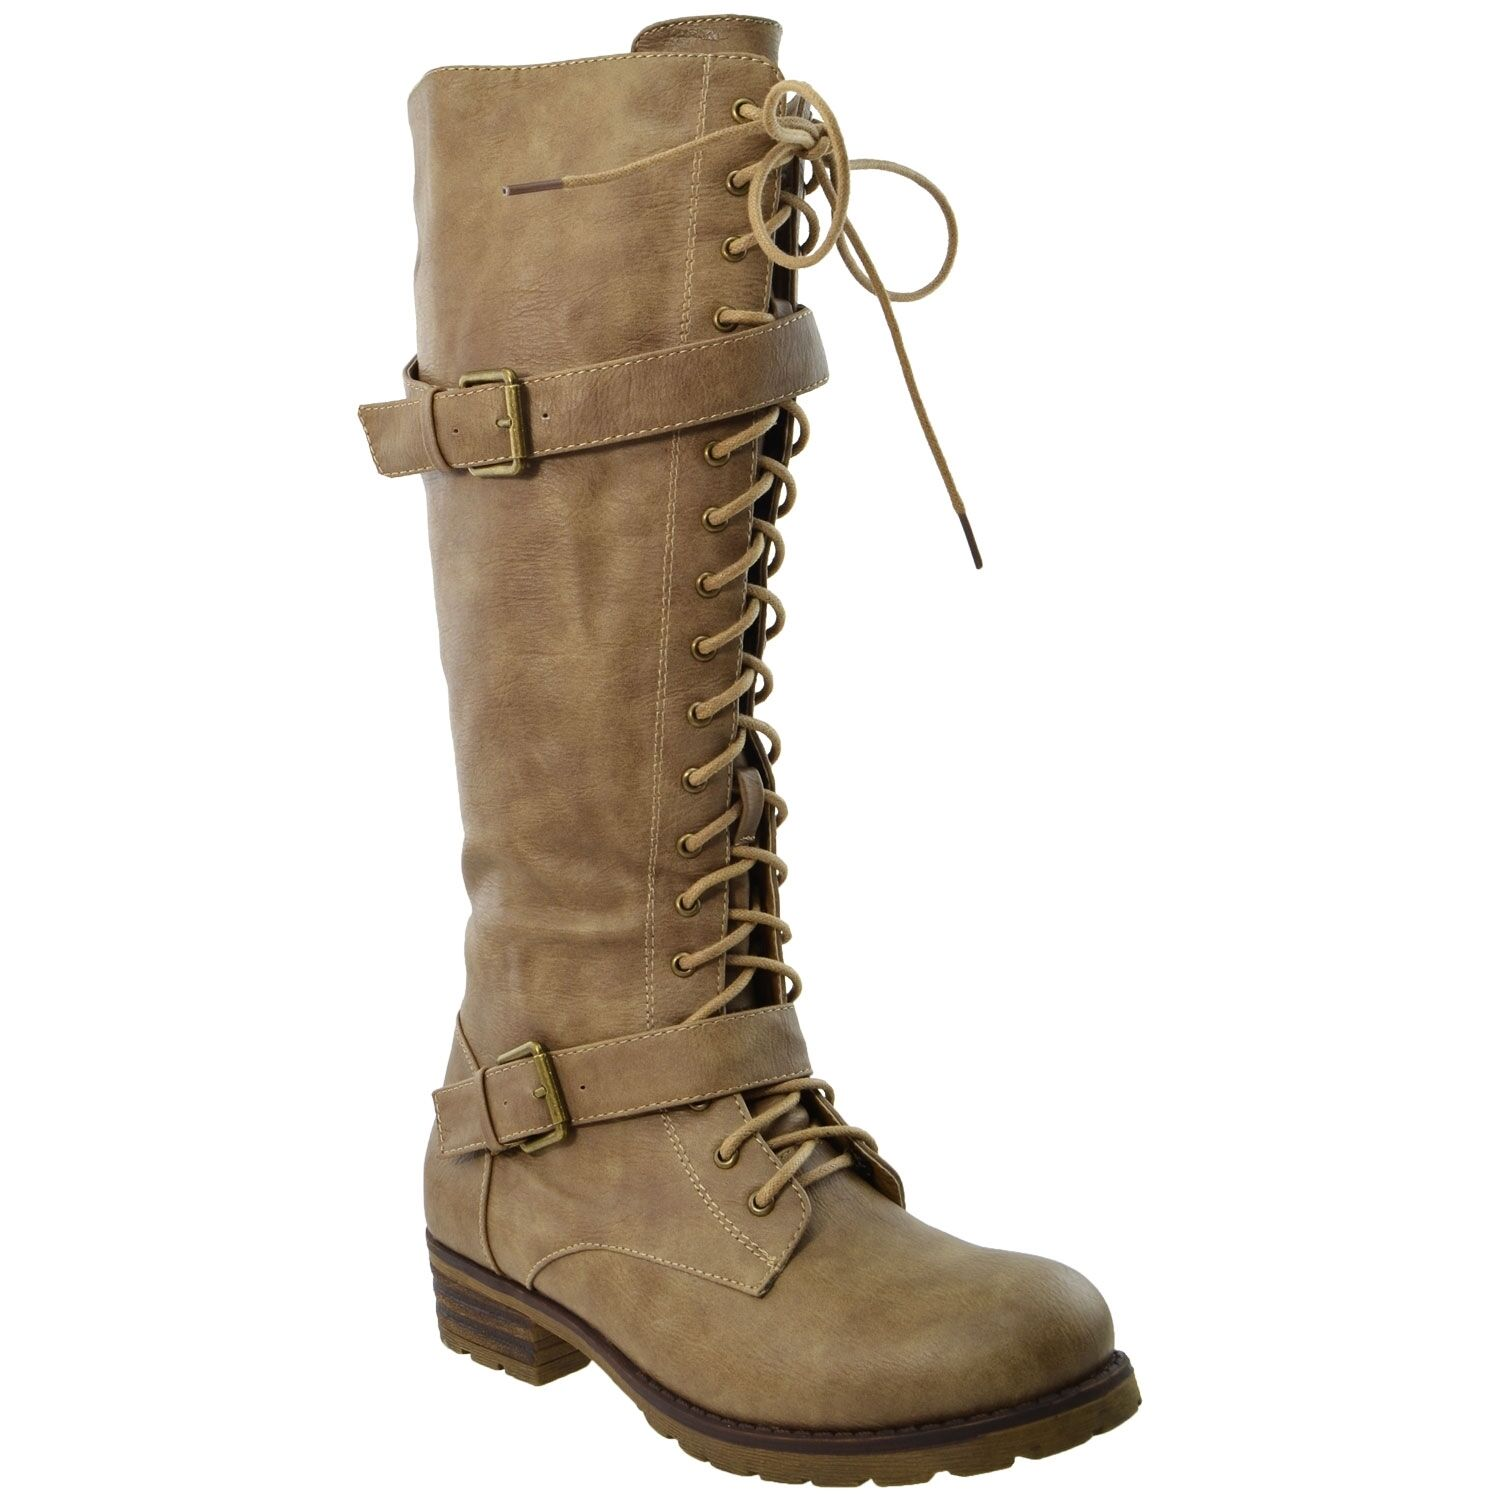 Womens Lace Up Combat Western Leather Knee High Boots w  Buckle Straps Taupe